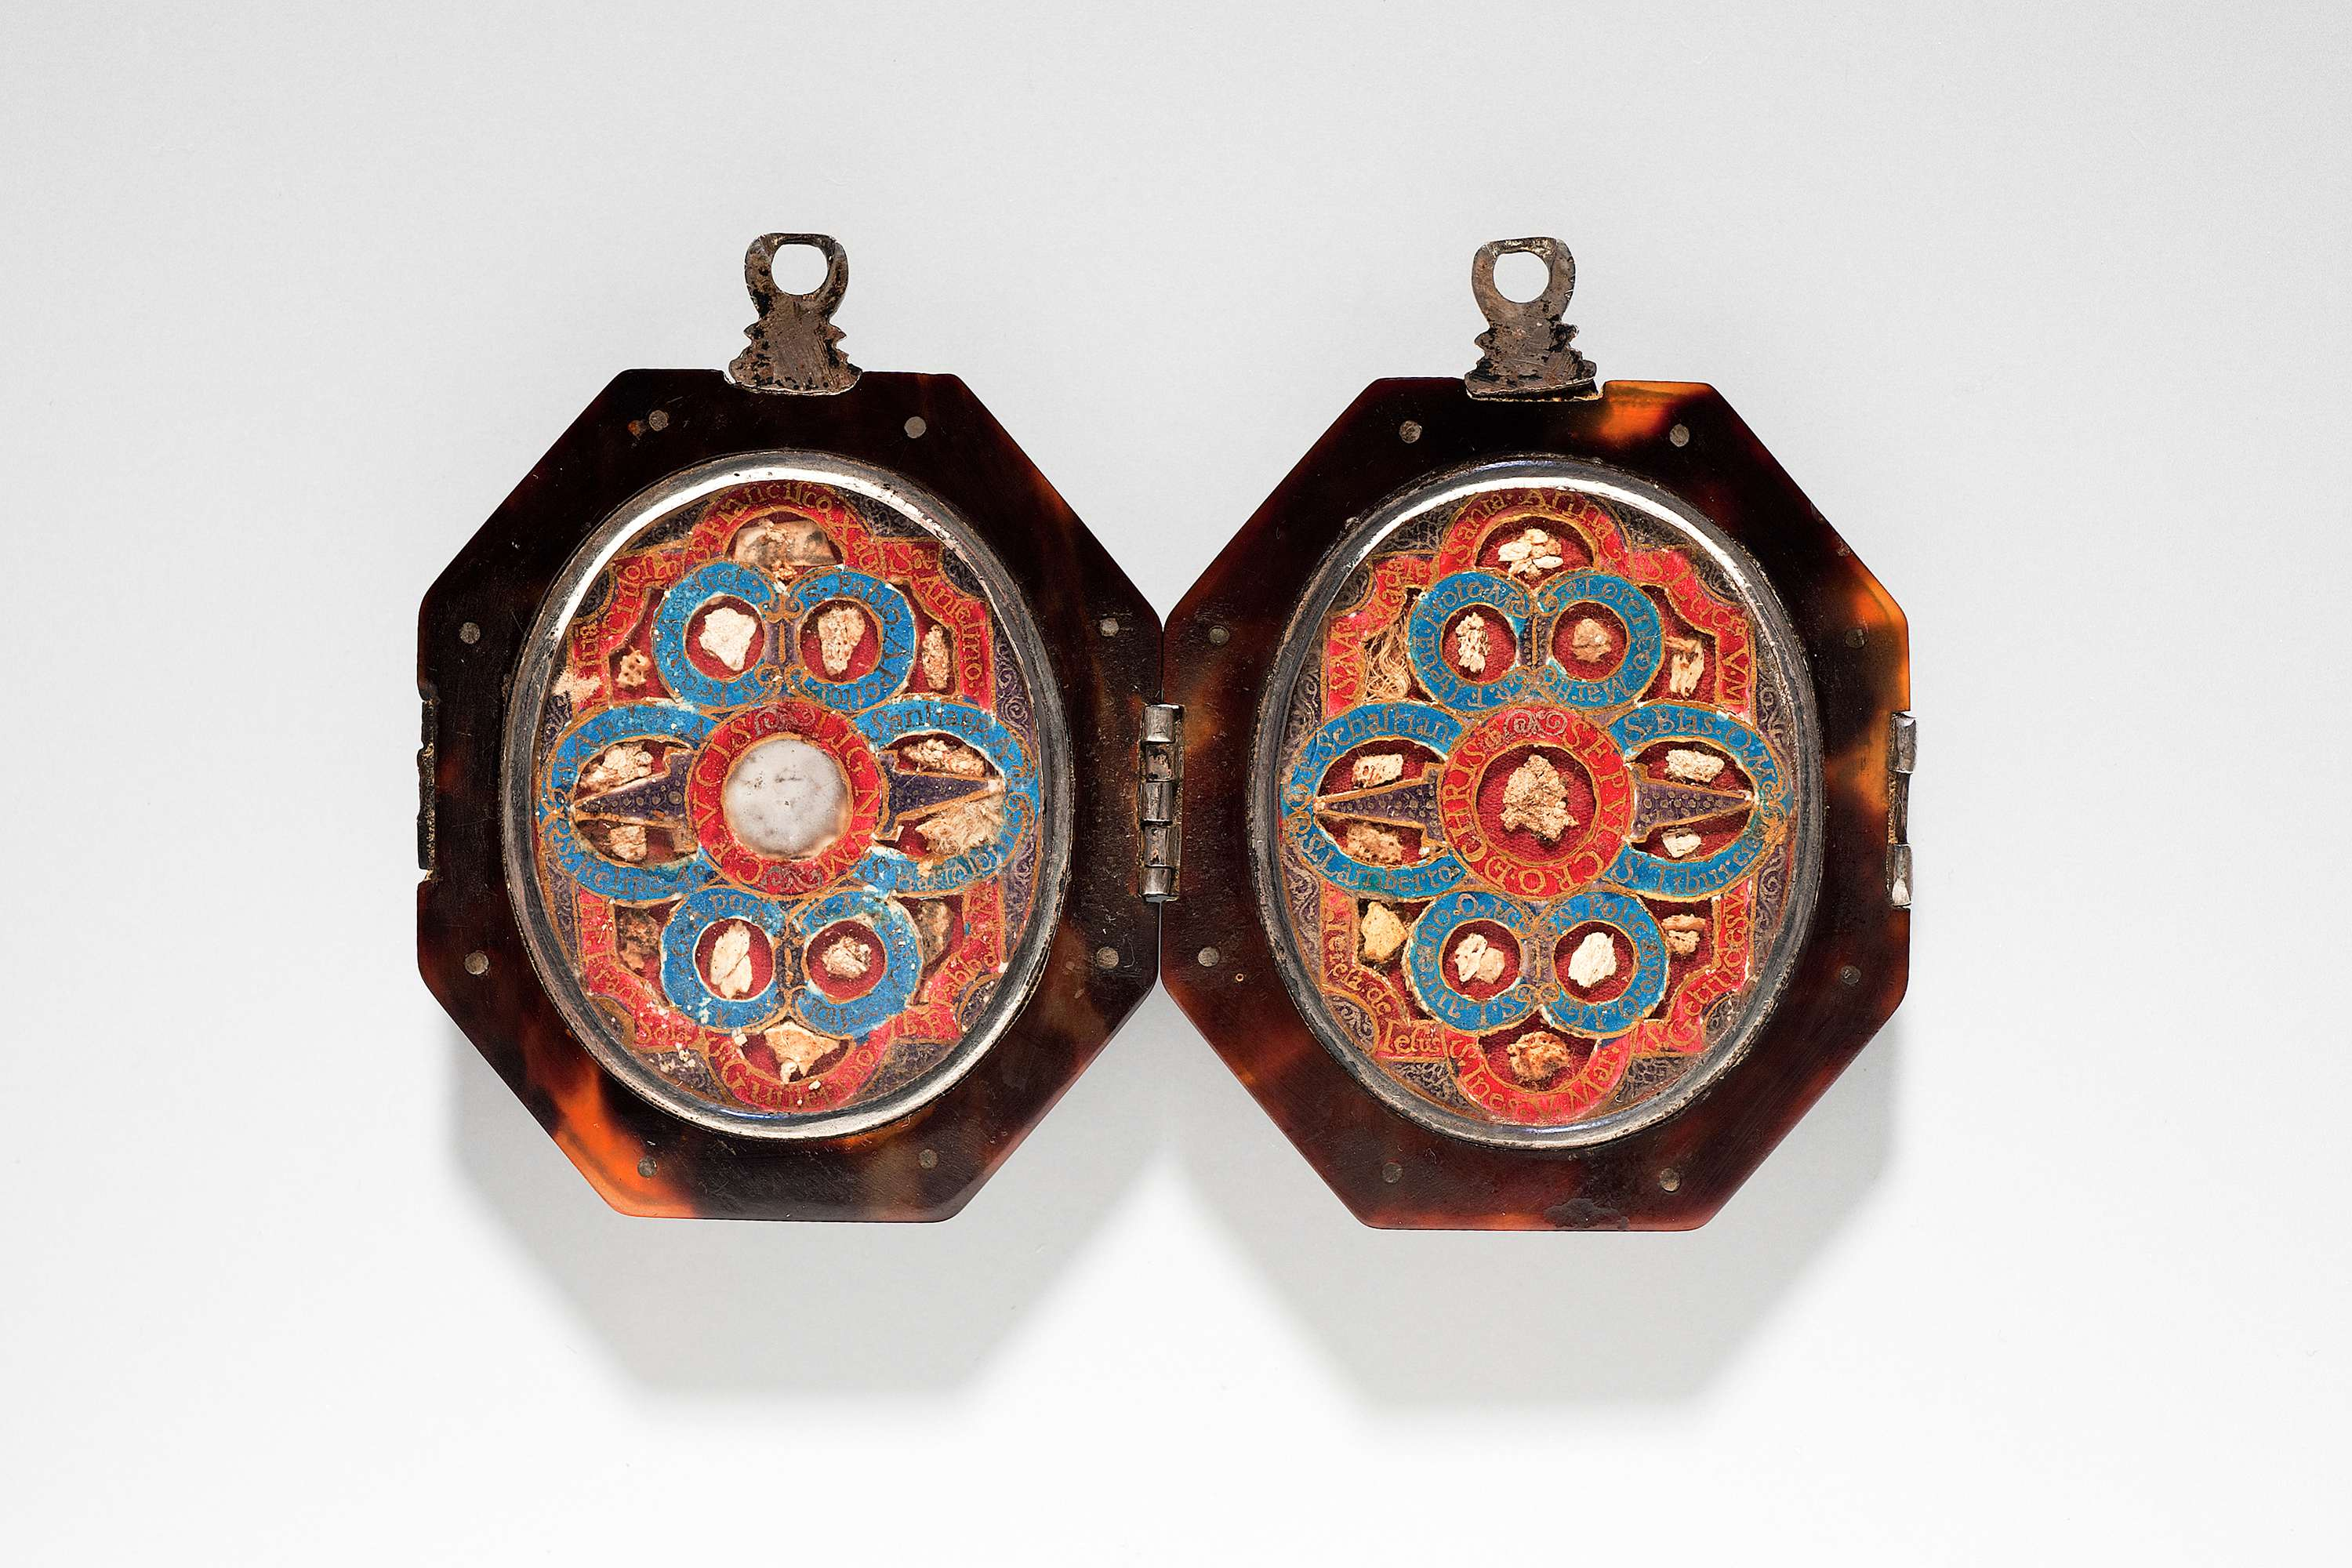 Double reliquary pendant alainruong double reliquary pendant tortoise shell silver rock crystal paper bone and stone open 75 x 115 cm spain 17th century deborah elvira stand 267 mozeypictures Images